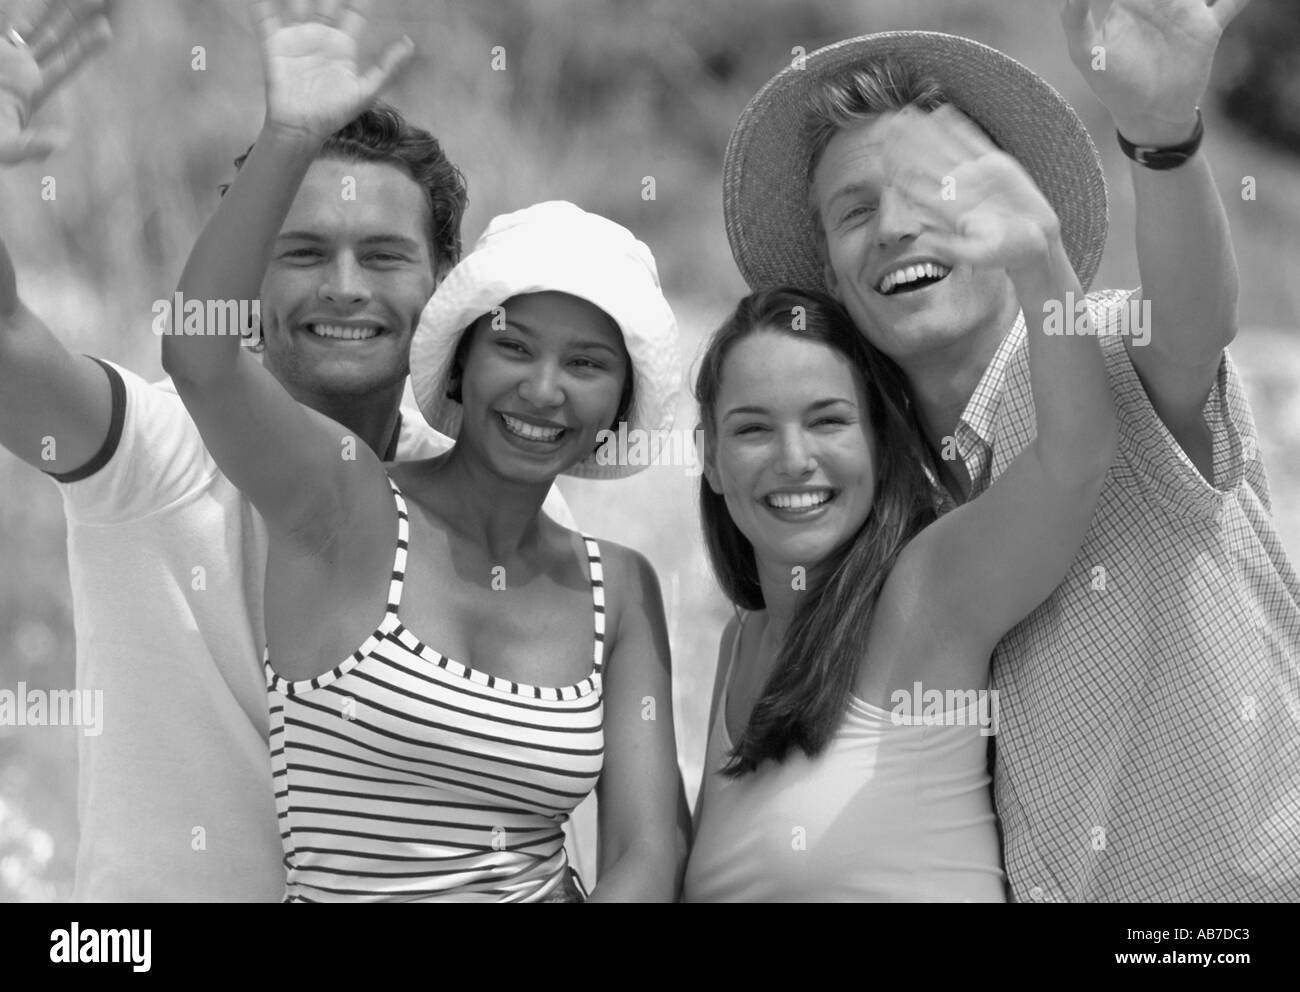 Two couples - Stock Image